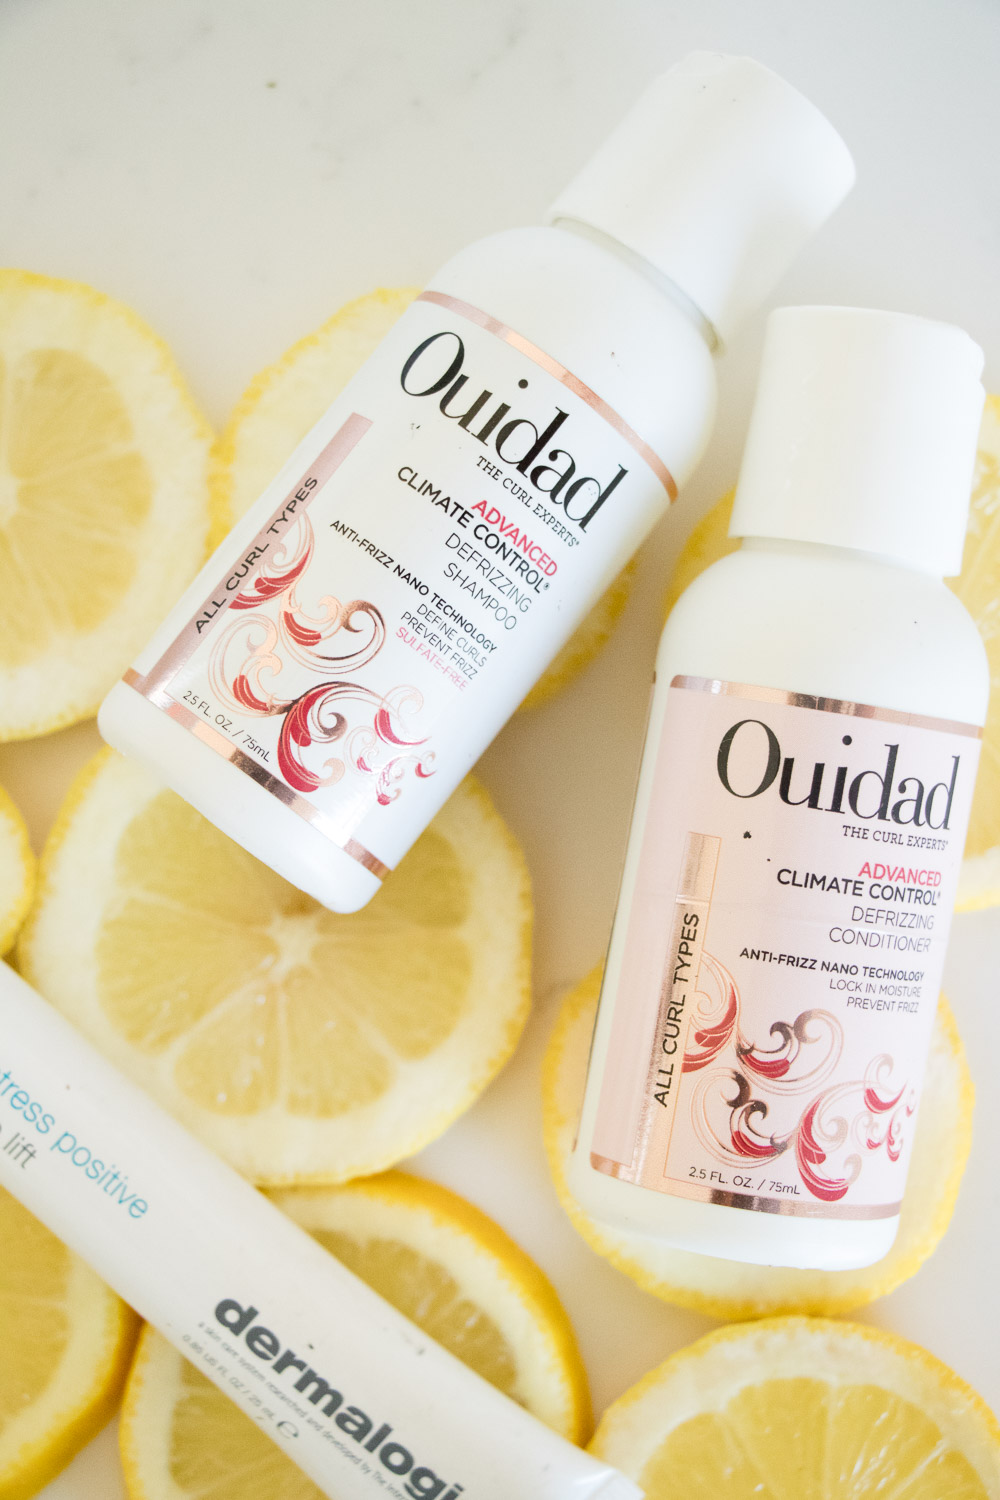 Ouidad Humidity resistant shampoo and condition